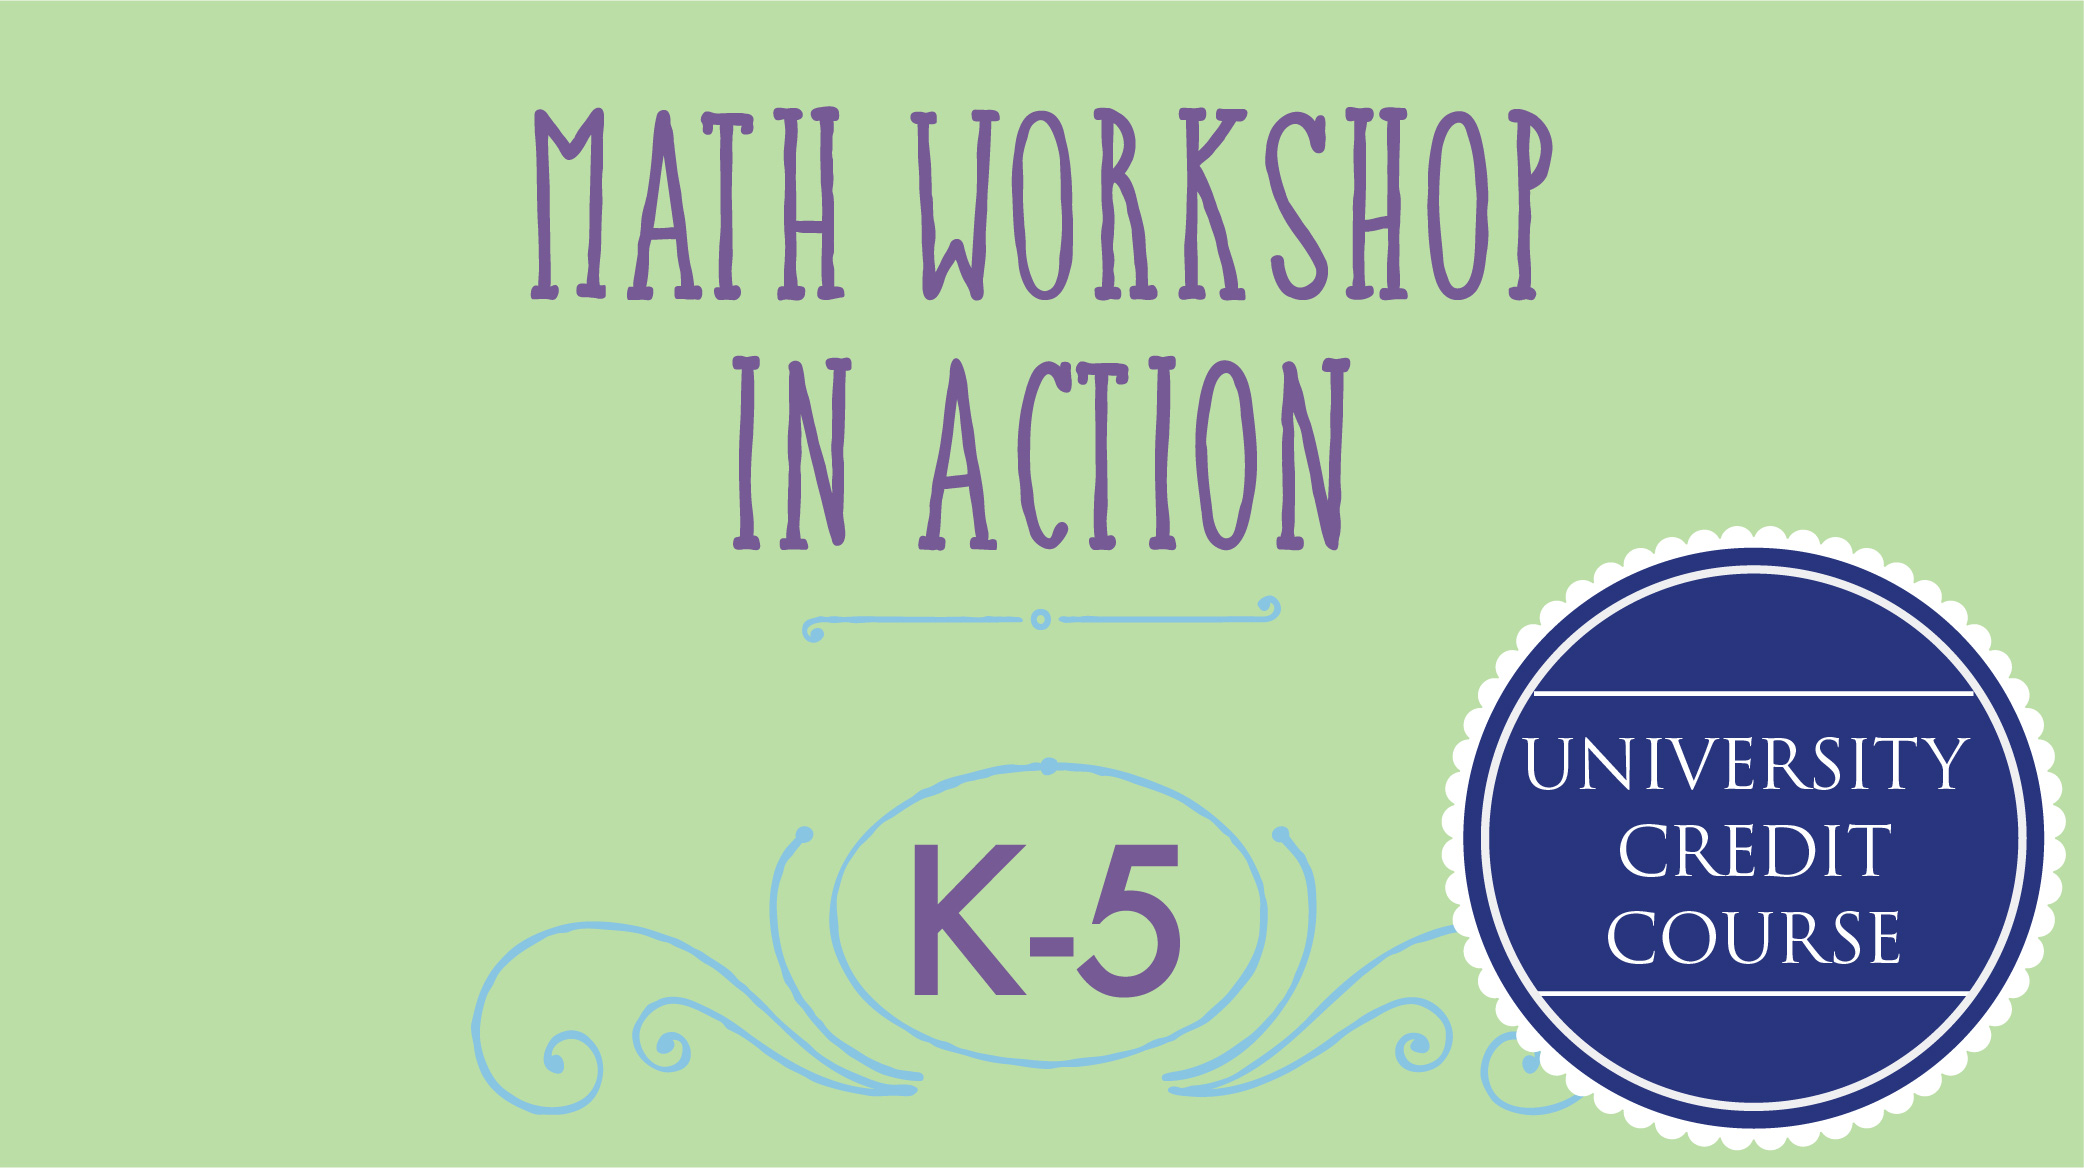 Class-title-cards_Math workshop in action k-5 UC